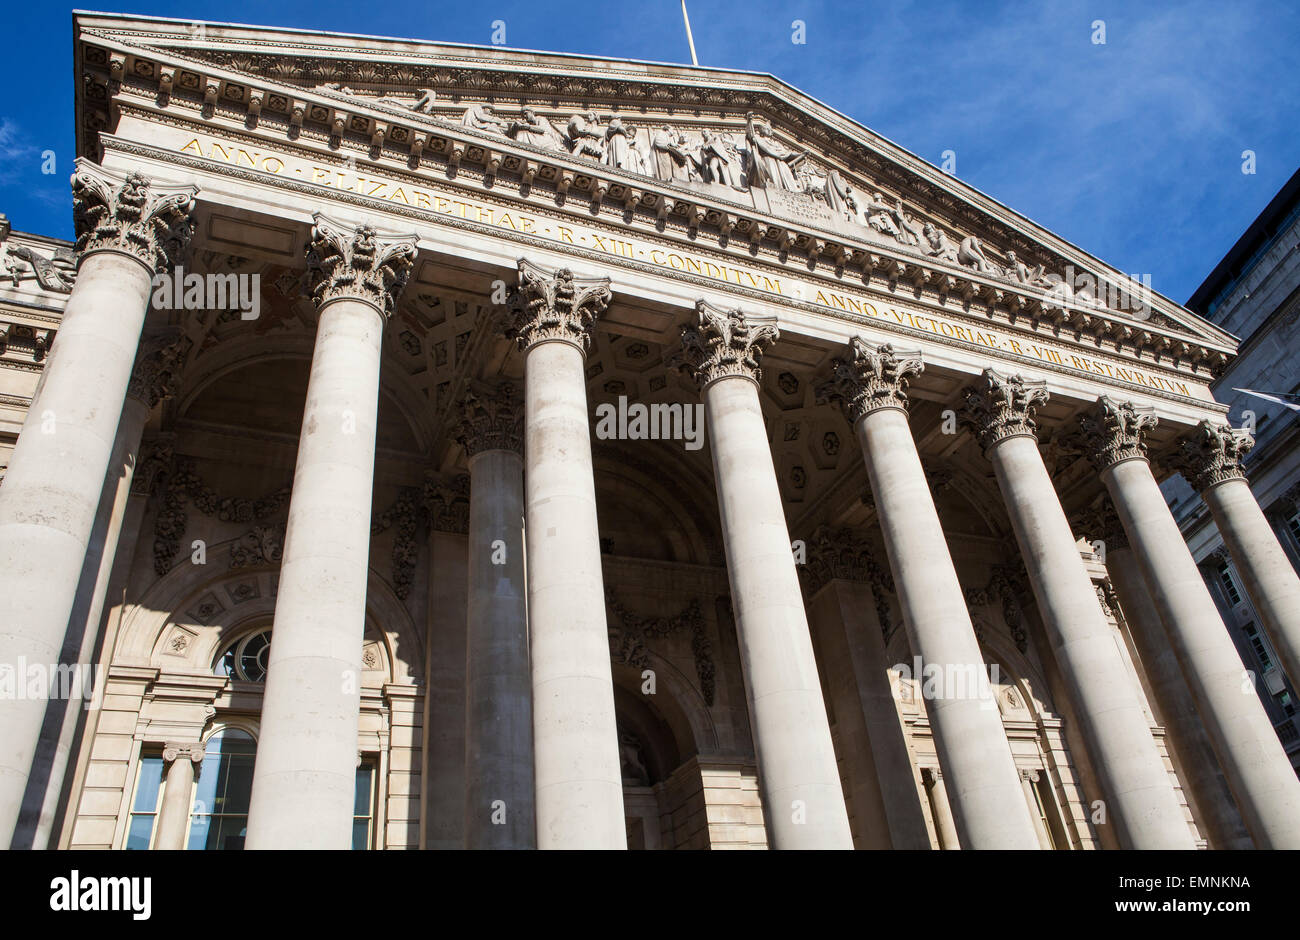 The magnificent exterior of the Royal Exchange in London. - Stock Image